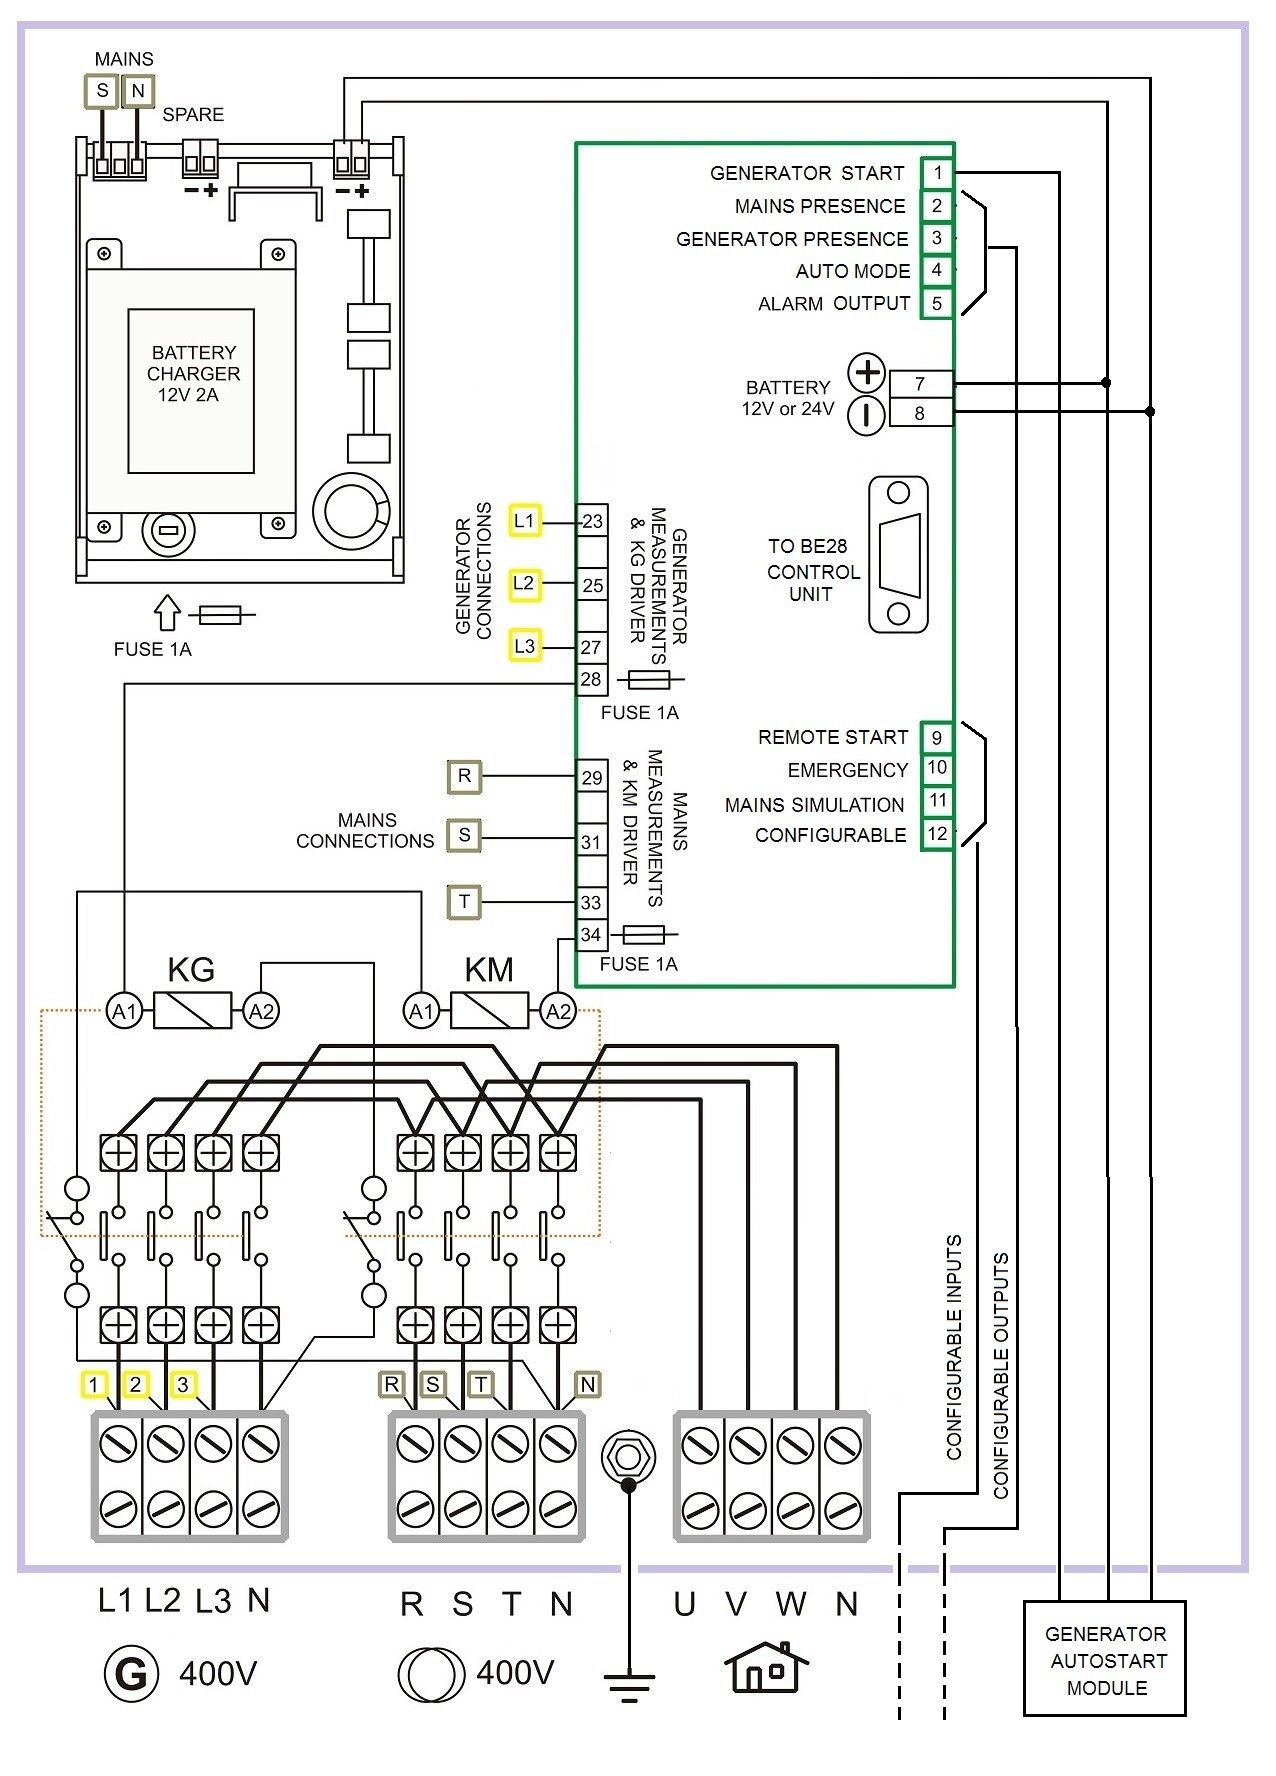 Wiring Diagram For Generator Transfer Switch Diagram Diagramtemplate Diagramsample Generator Transfer Switch Transfer Switch Electrical Circuit Diagram